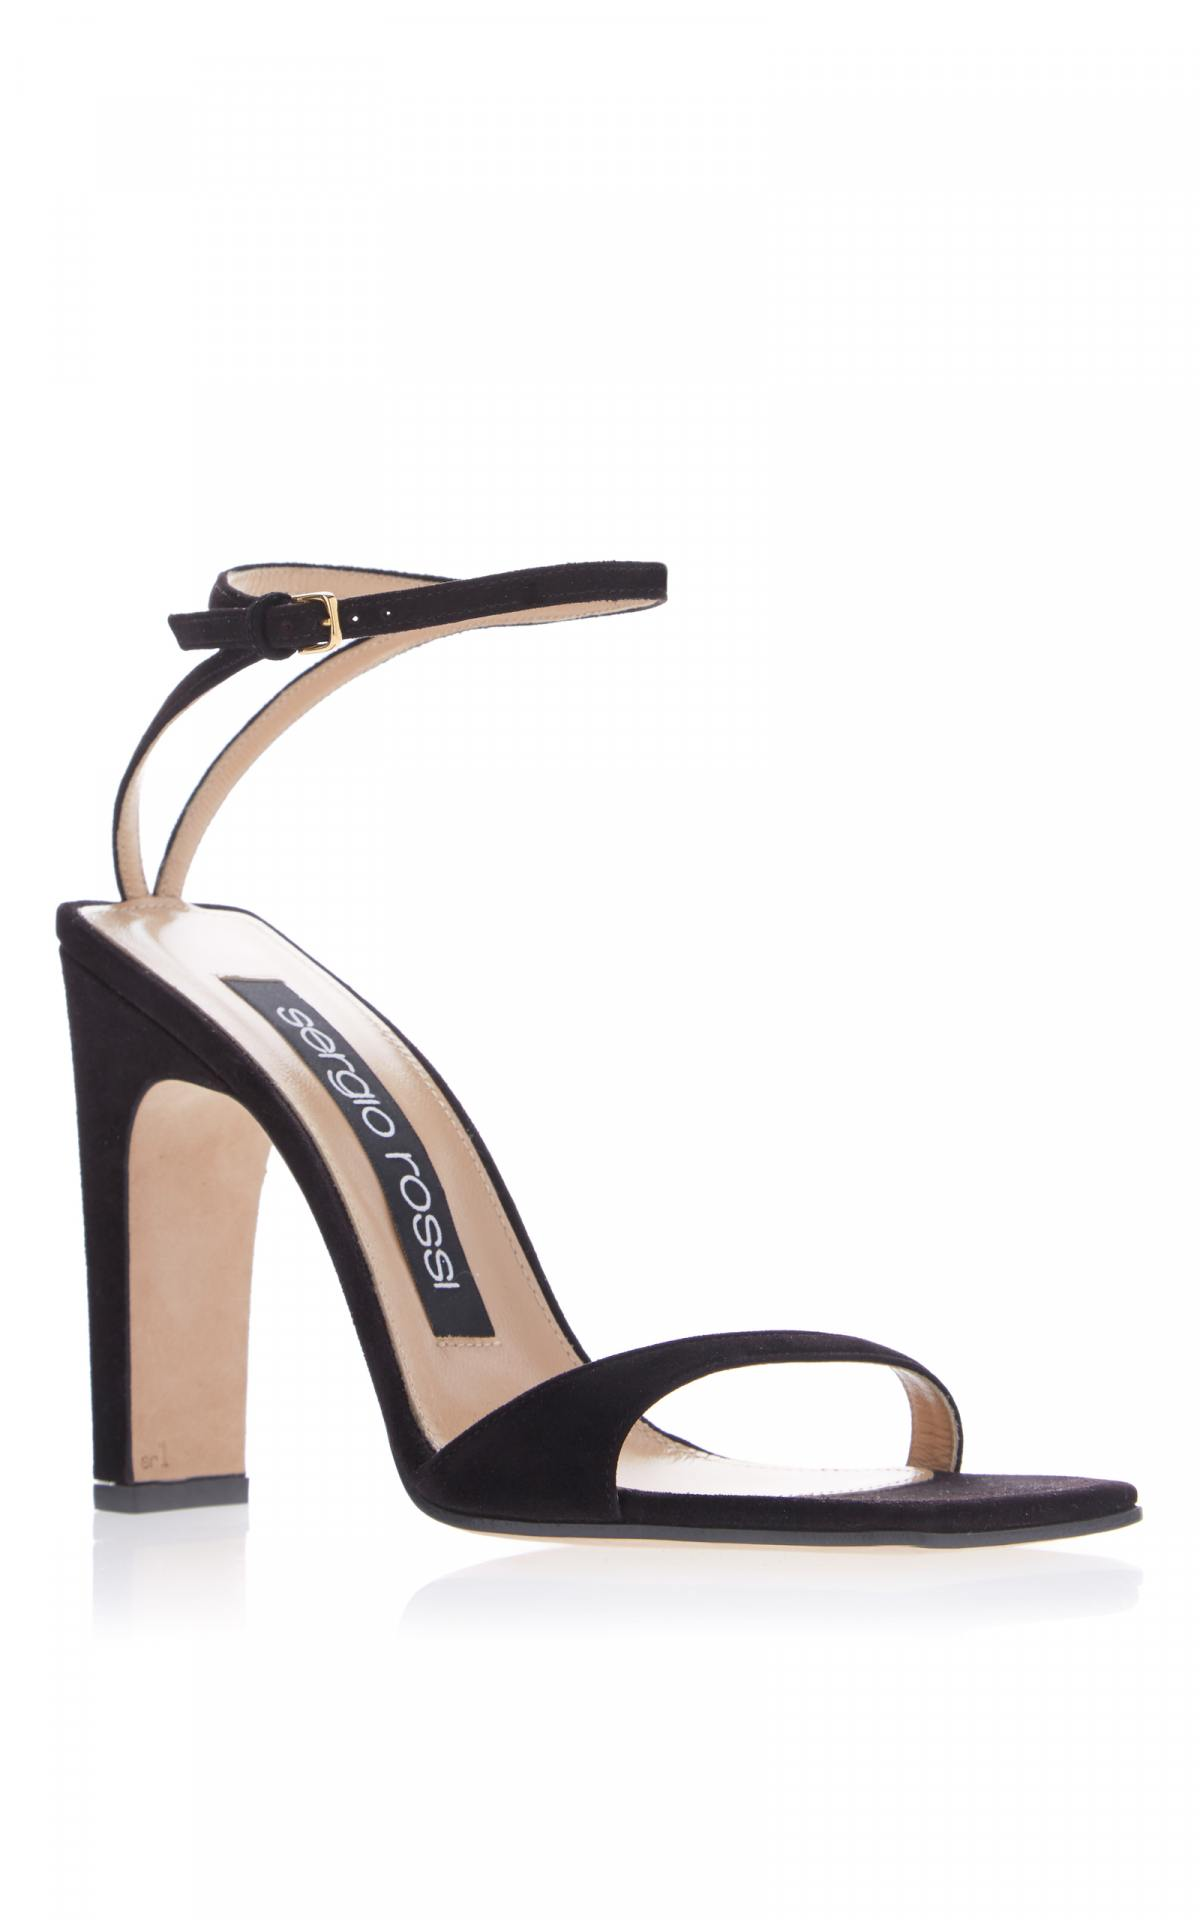 SR1 Square Toe Sandal by Sergio Rossi, available on modaoperandi.com for $730 Priyanka Chopra Shoes Exact Product